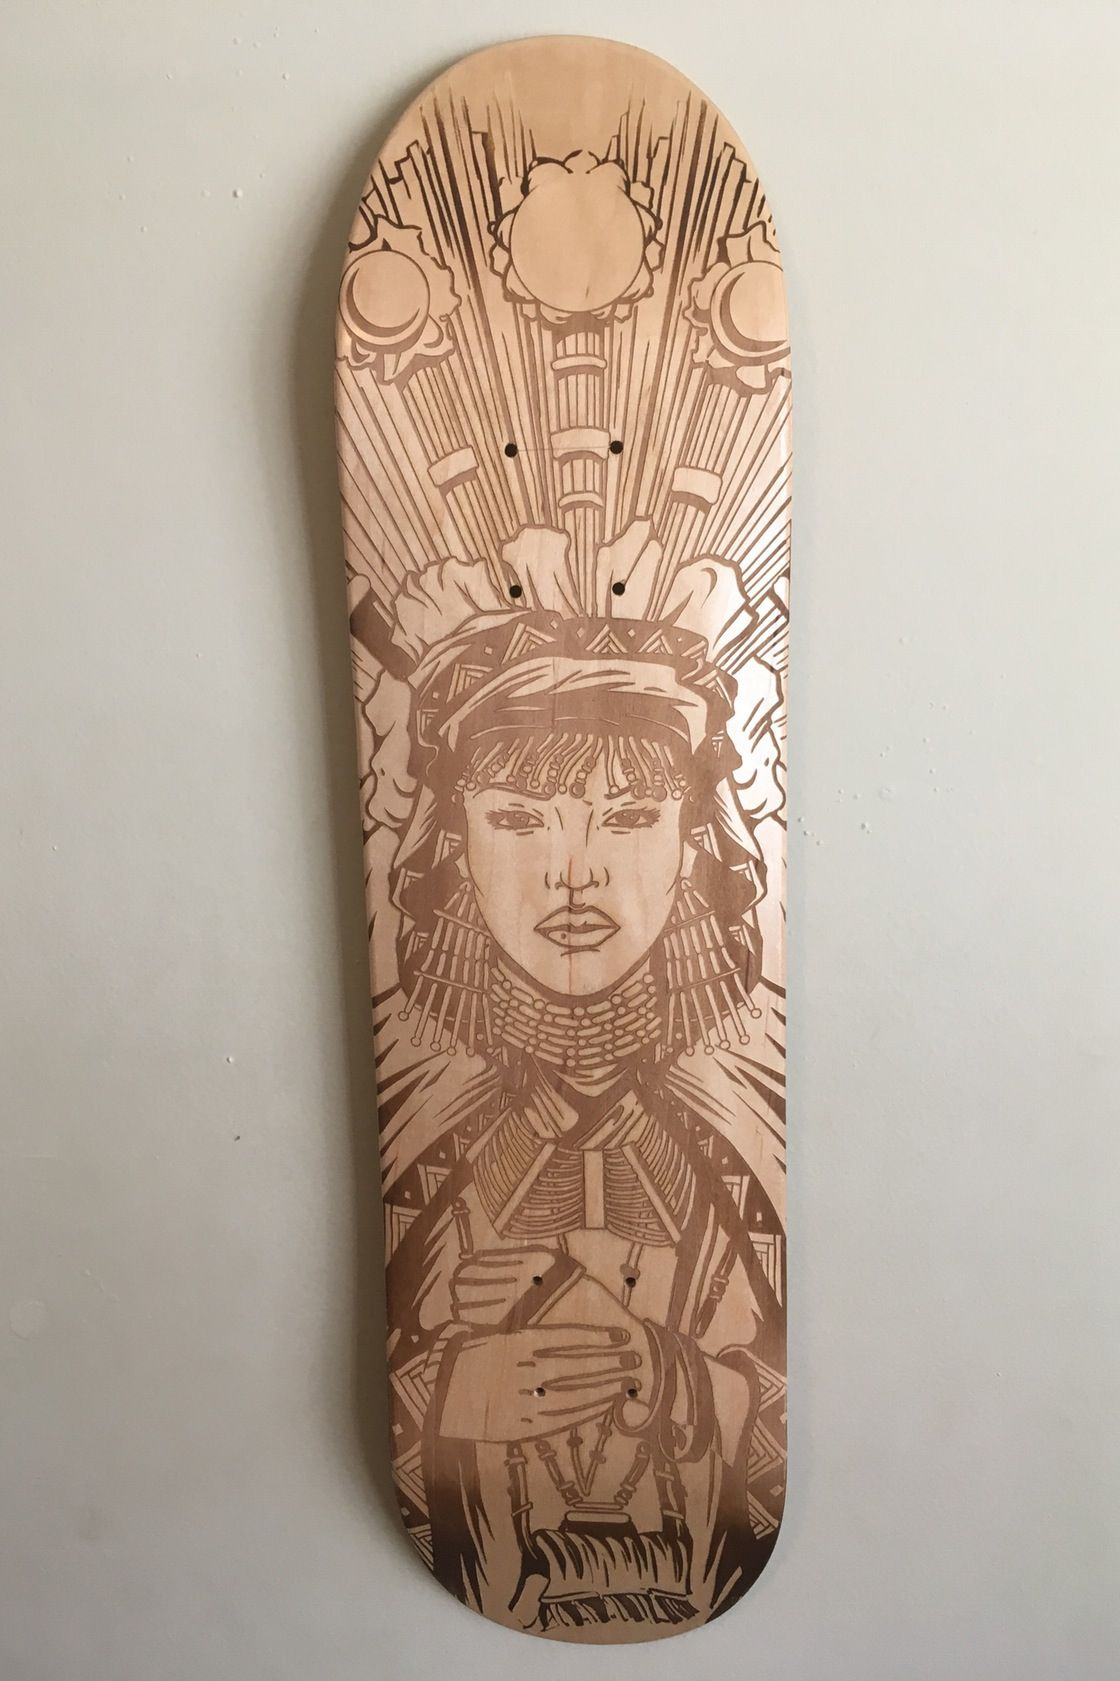 OG Queens skateboards